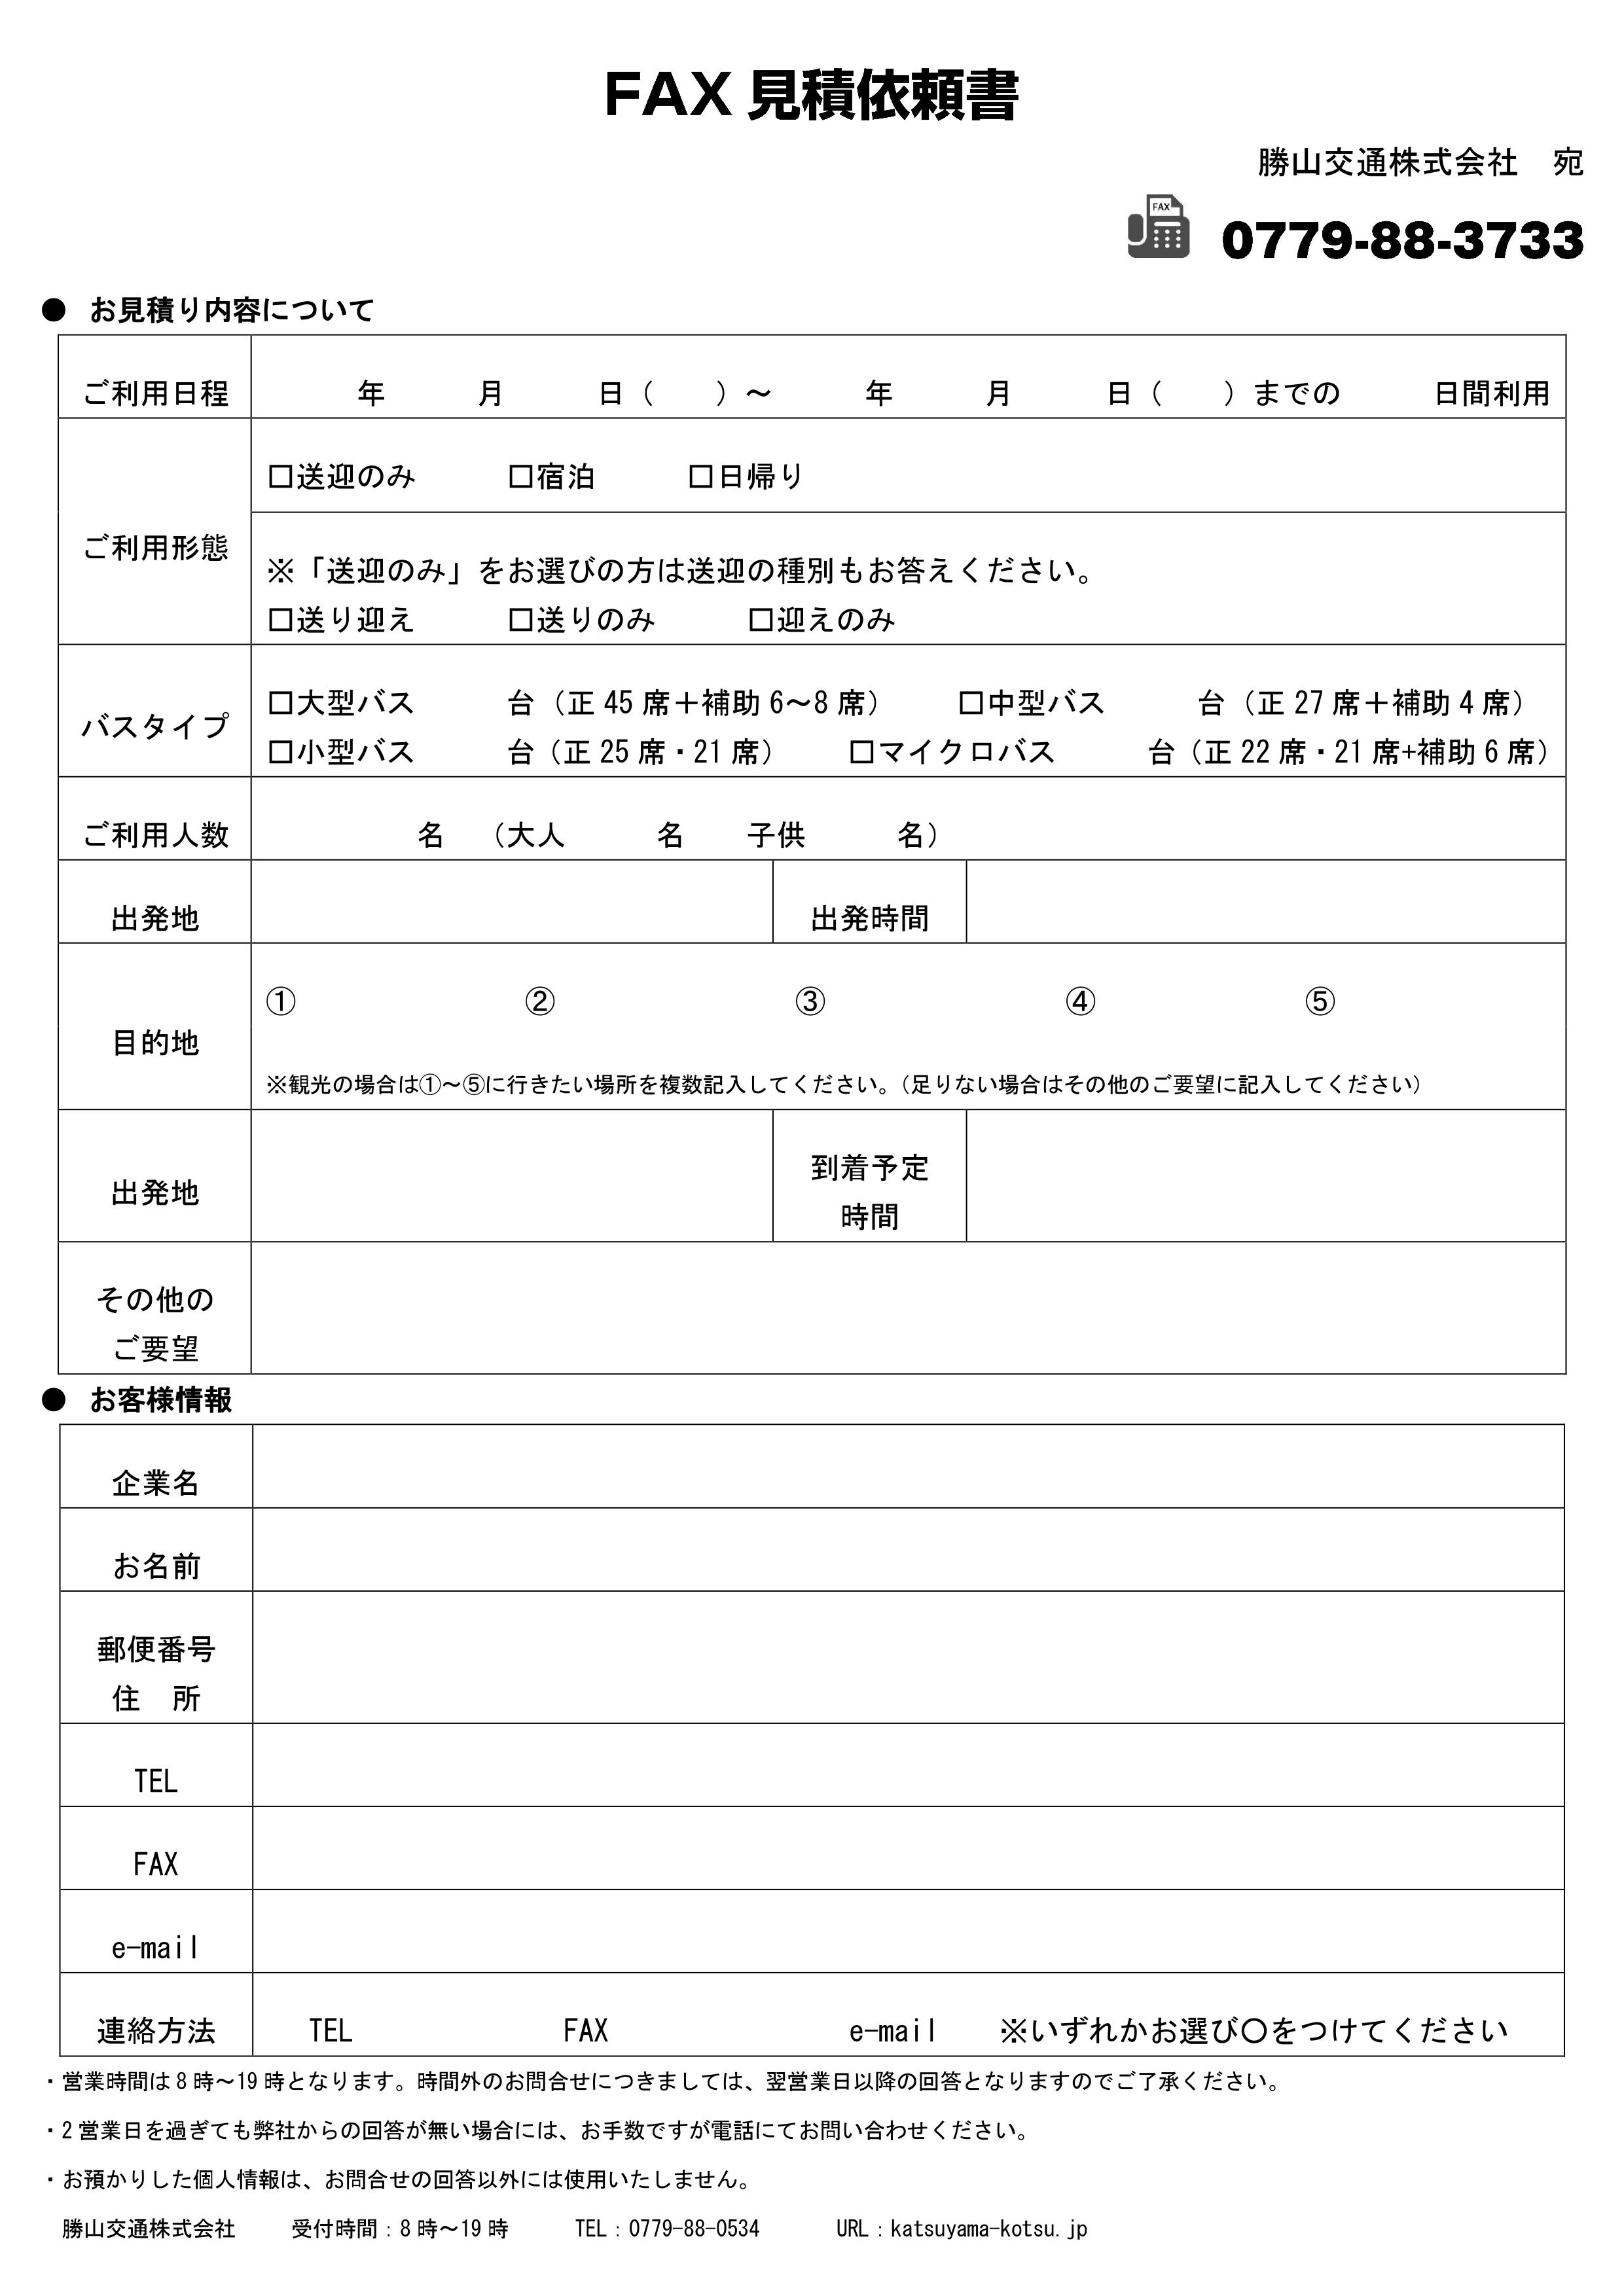 FAX見積依頼書(イメージ)